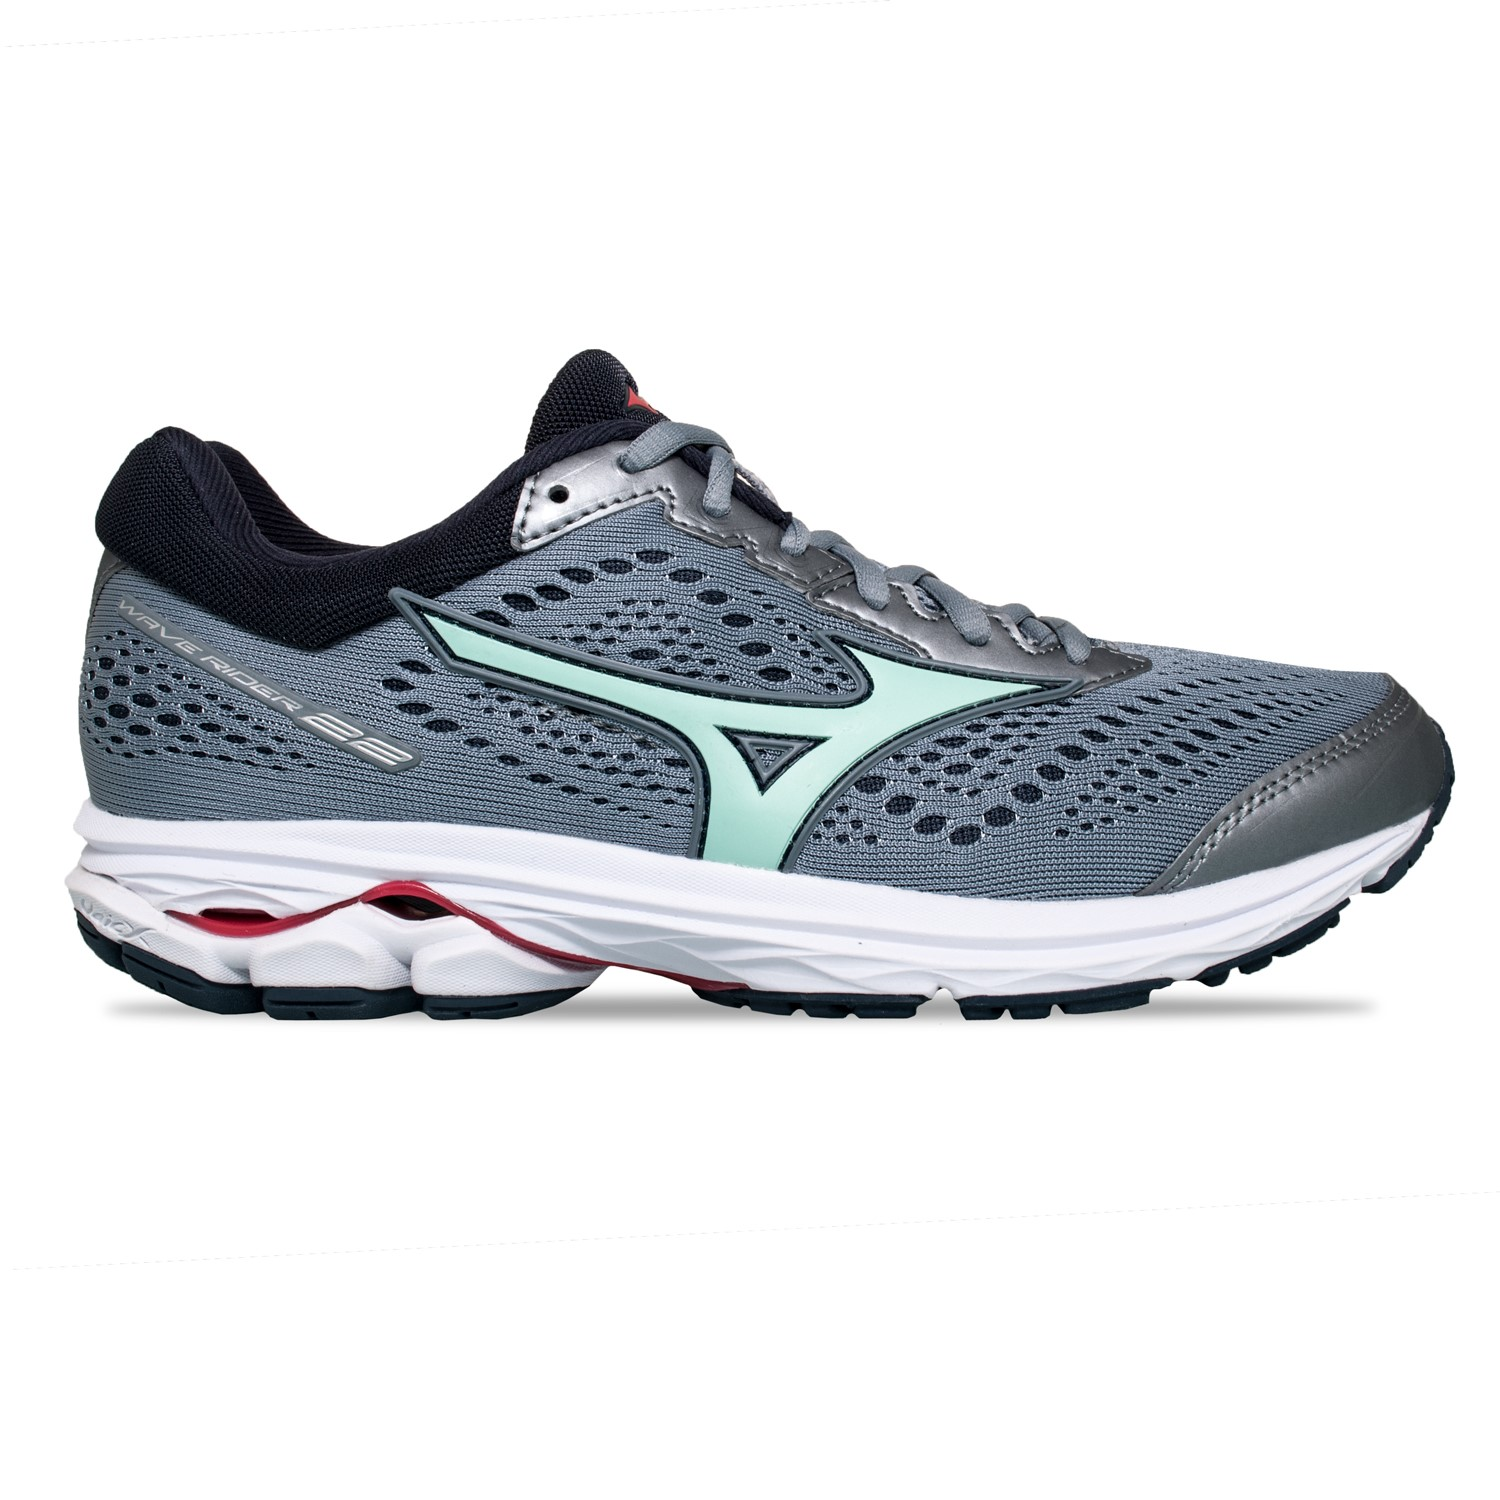 5344be307c7c Mizuno Wave Rider 22 - Womens Running Shoes - Tradewinds/Brook Green/ Teaberry